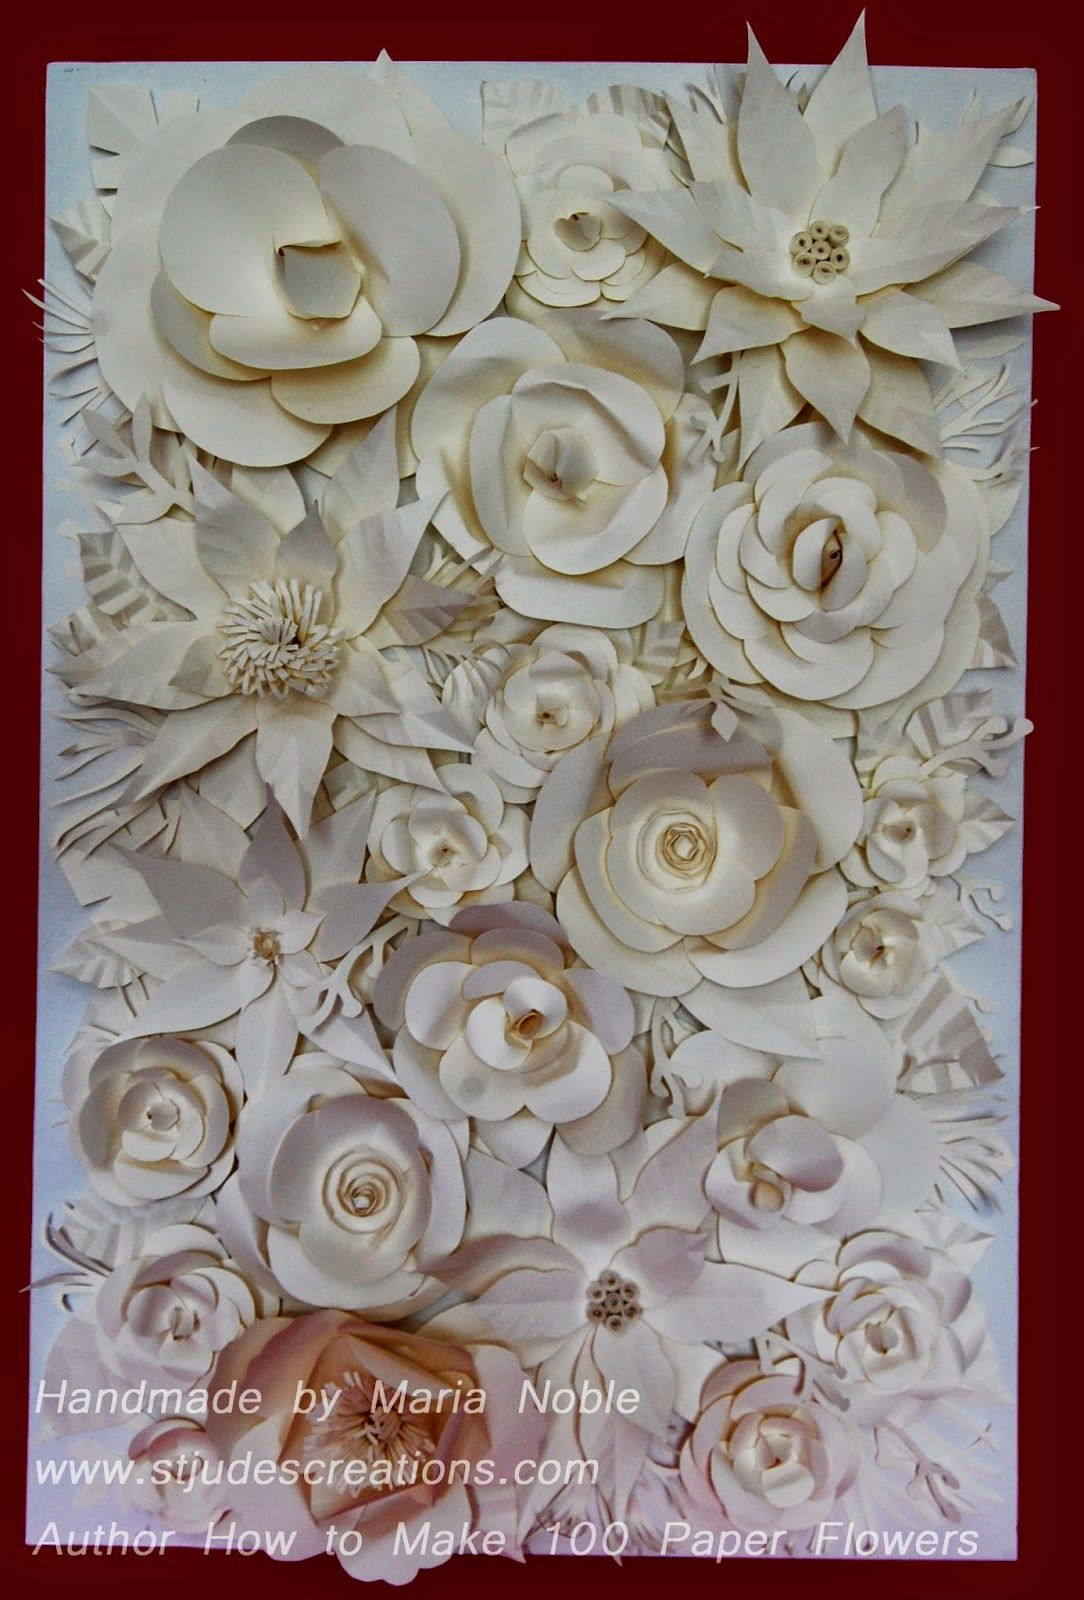 Chanel camelia for a paper flower wall art for backdrop or